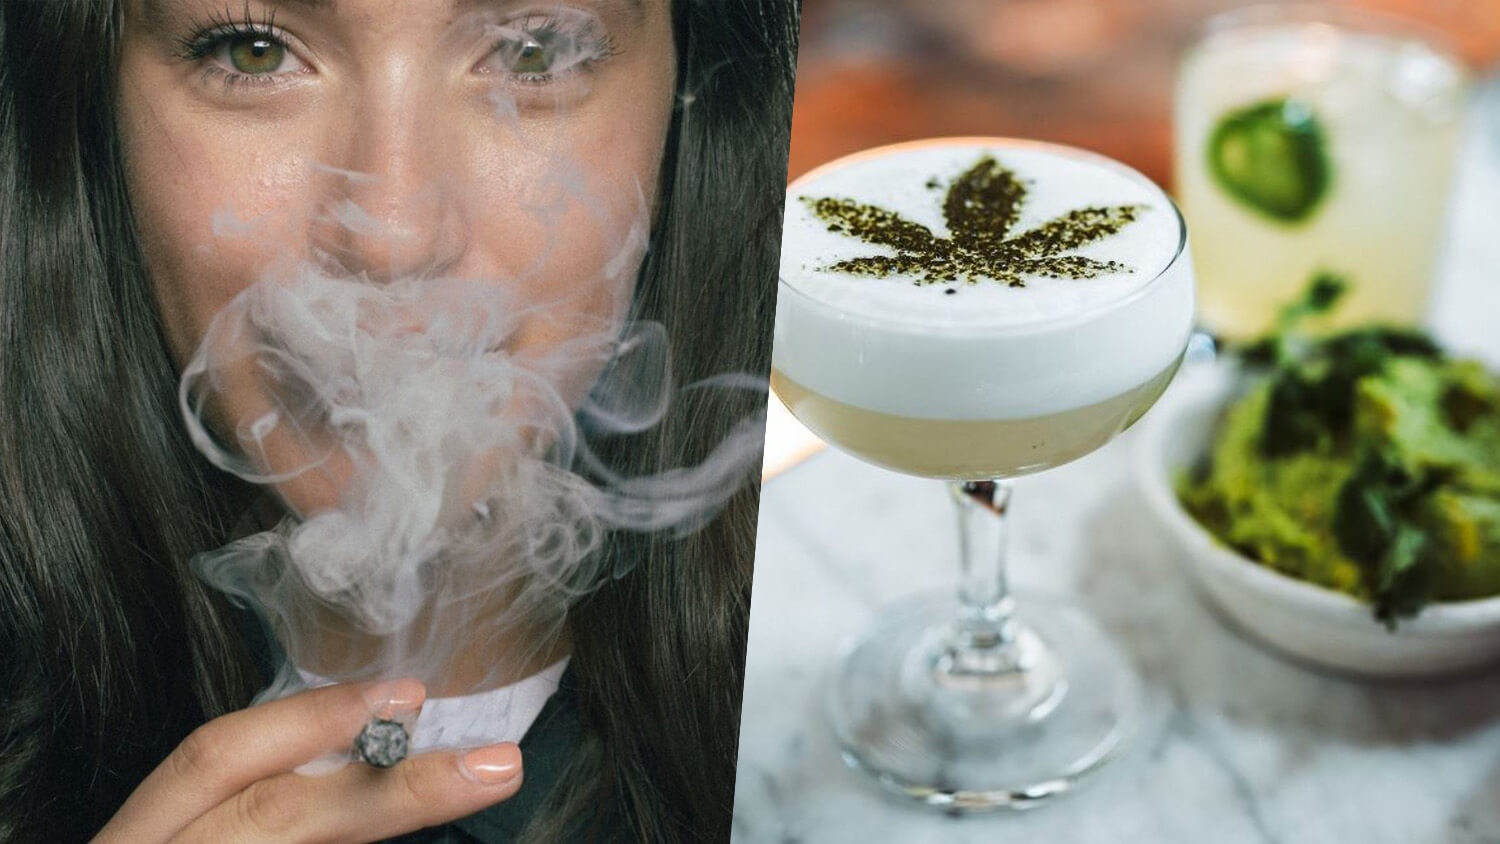 A Bunch of Potheads Just Hosted a Vegan CBD-Infused 'Hempsgiving' Dinner